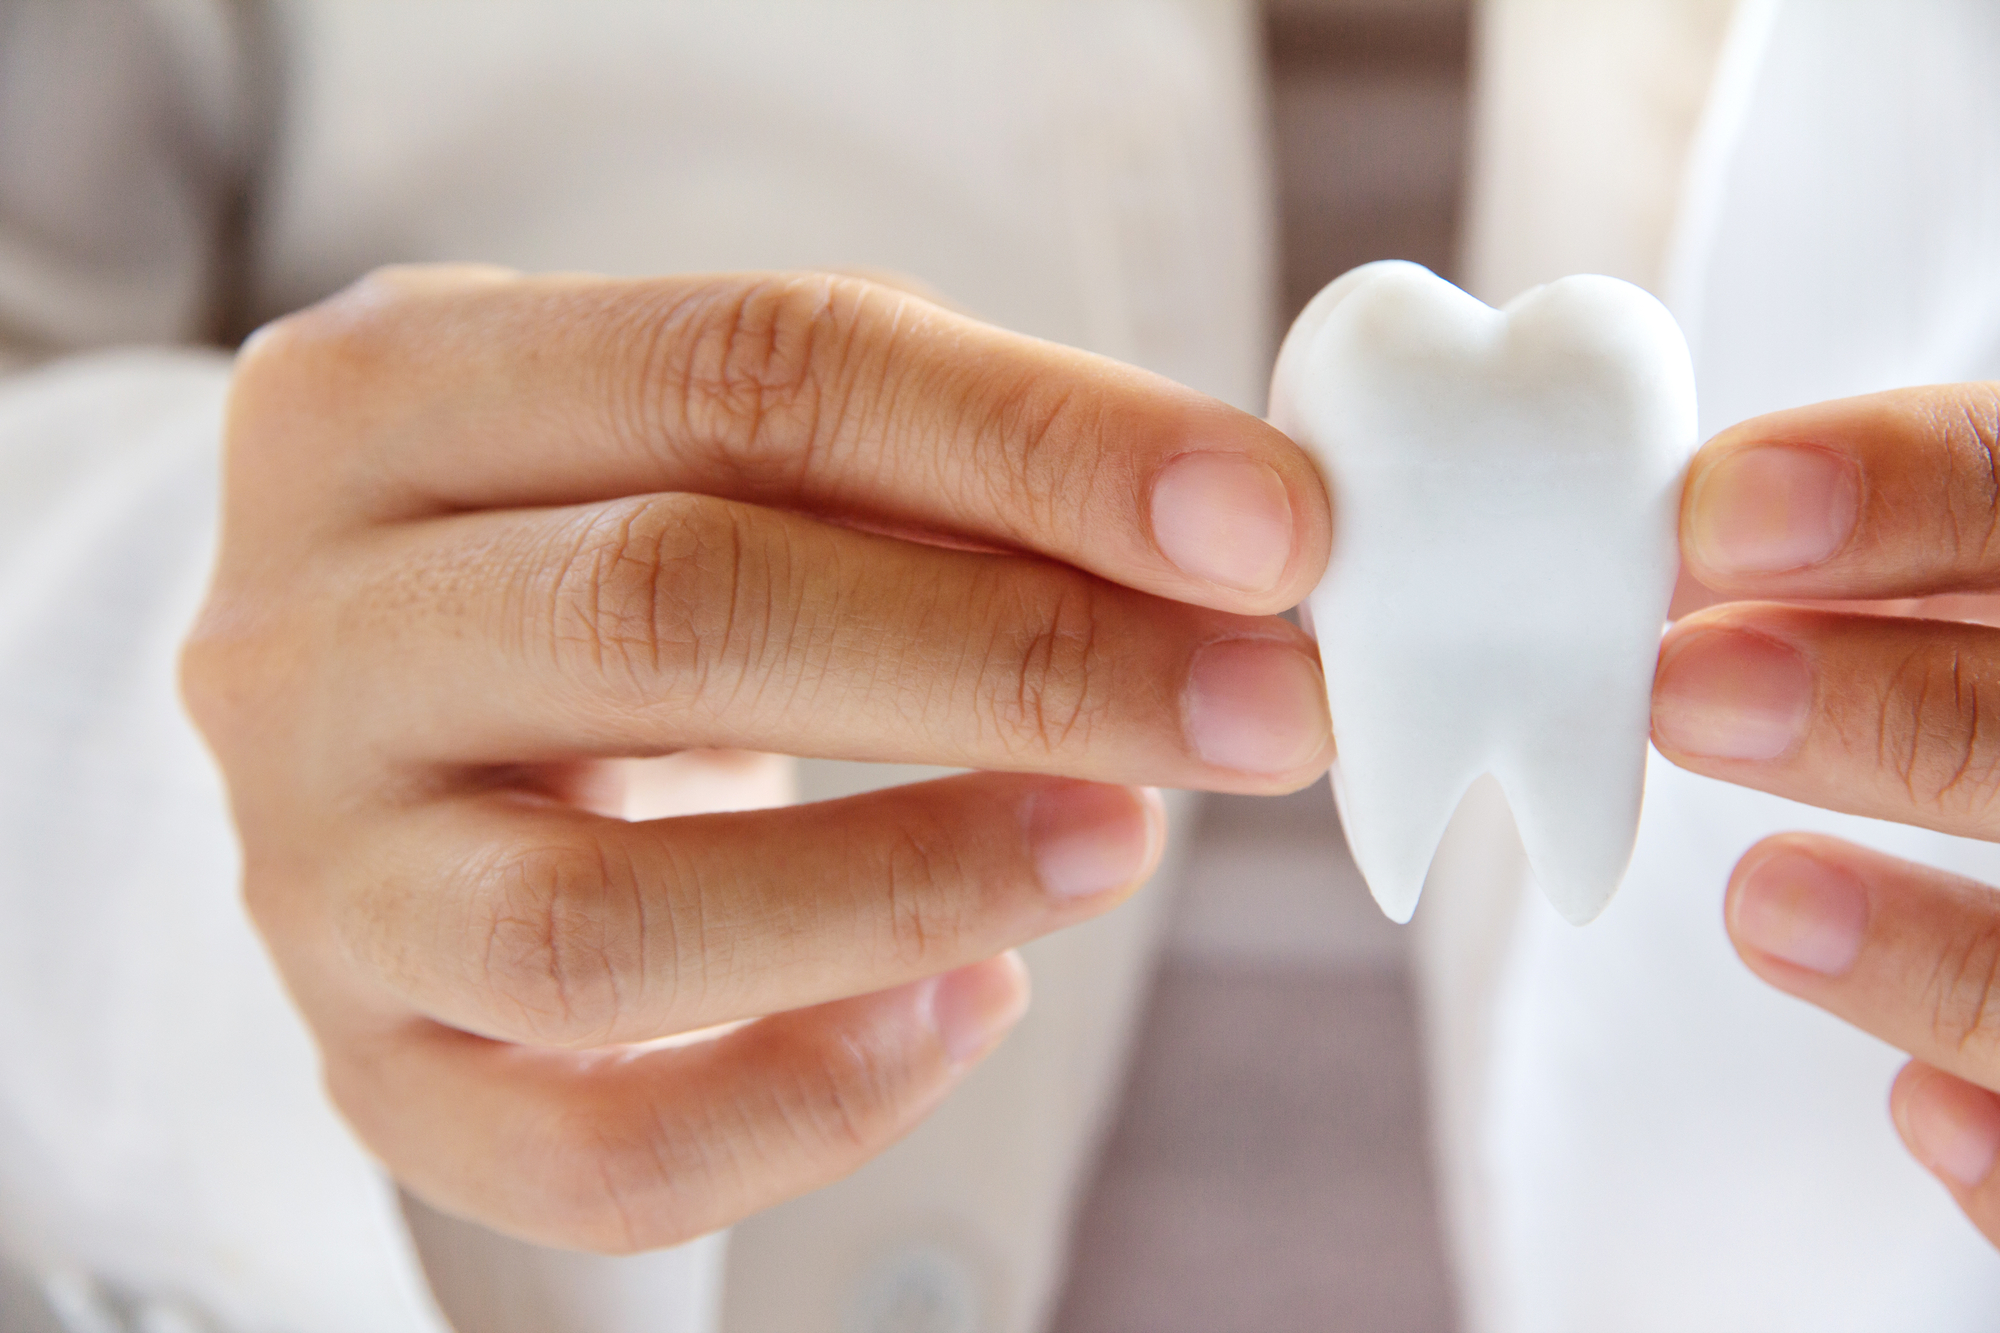 Peptide tooth coating helps keep cavities at bay